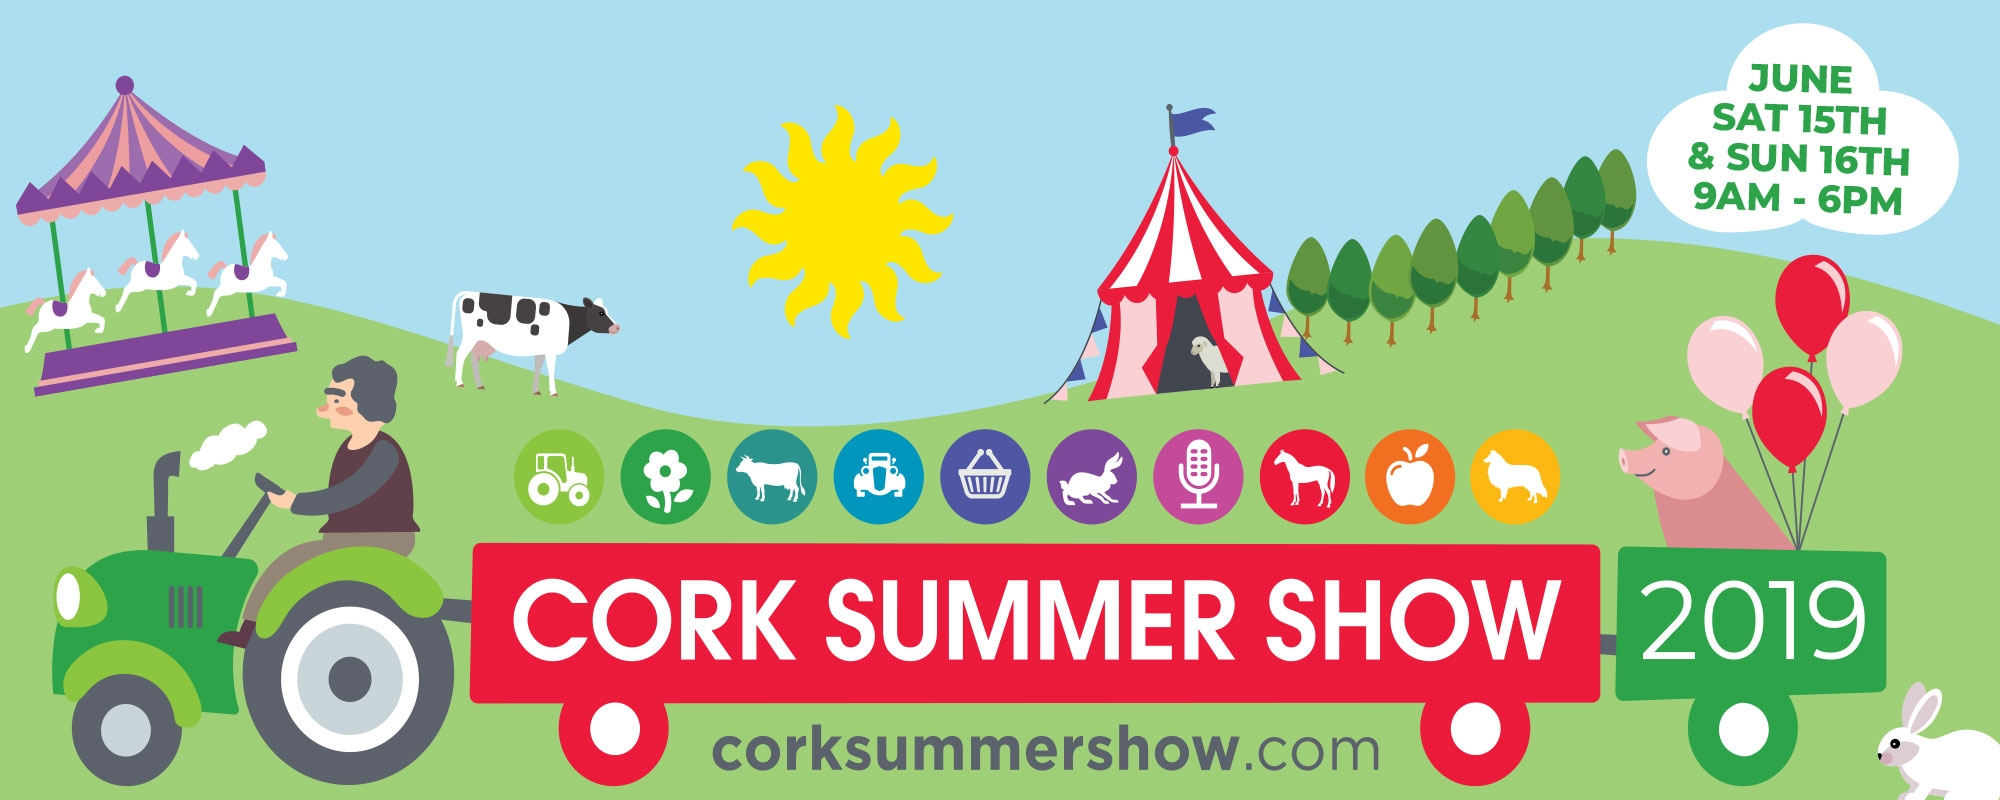 Cork Summer Show 2019 | www.ringofcork.ie | Ring of Cork